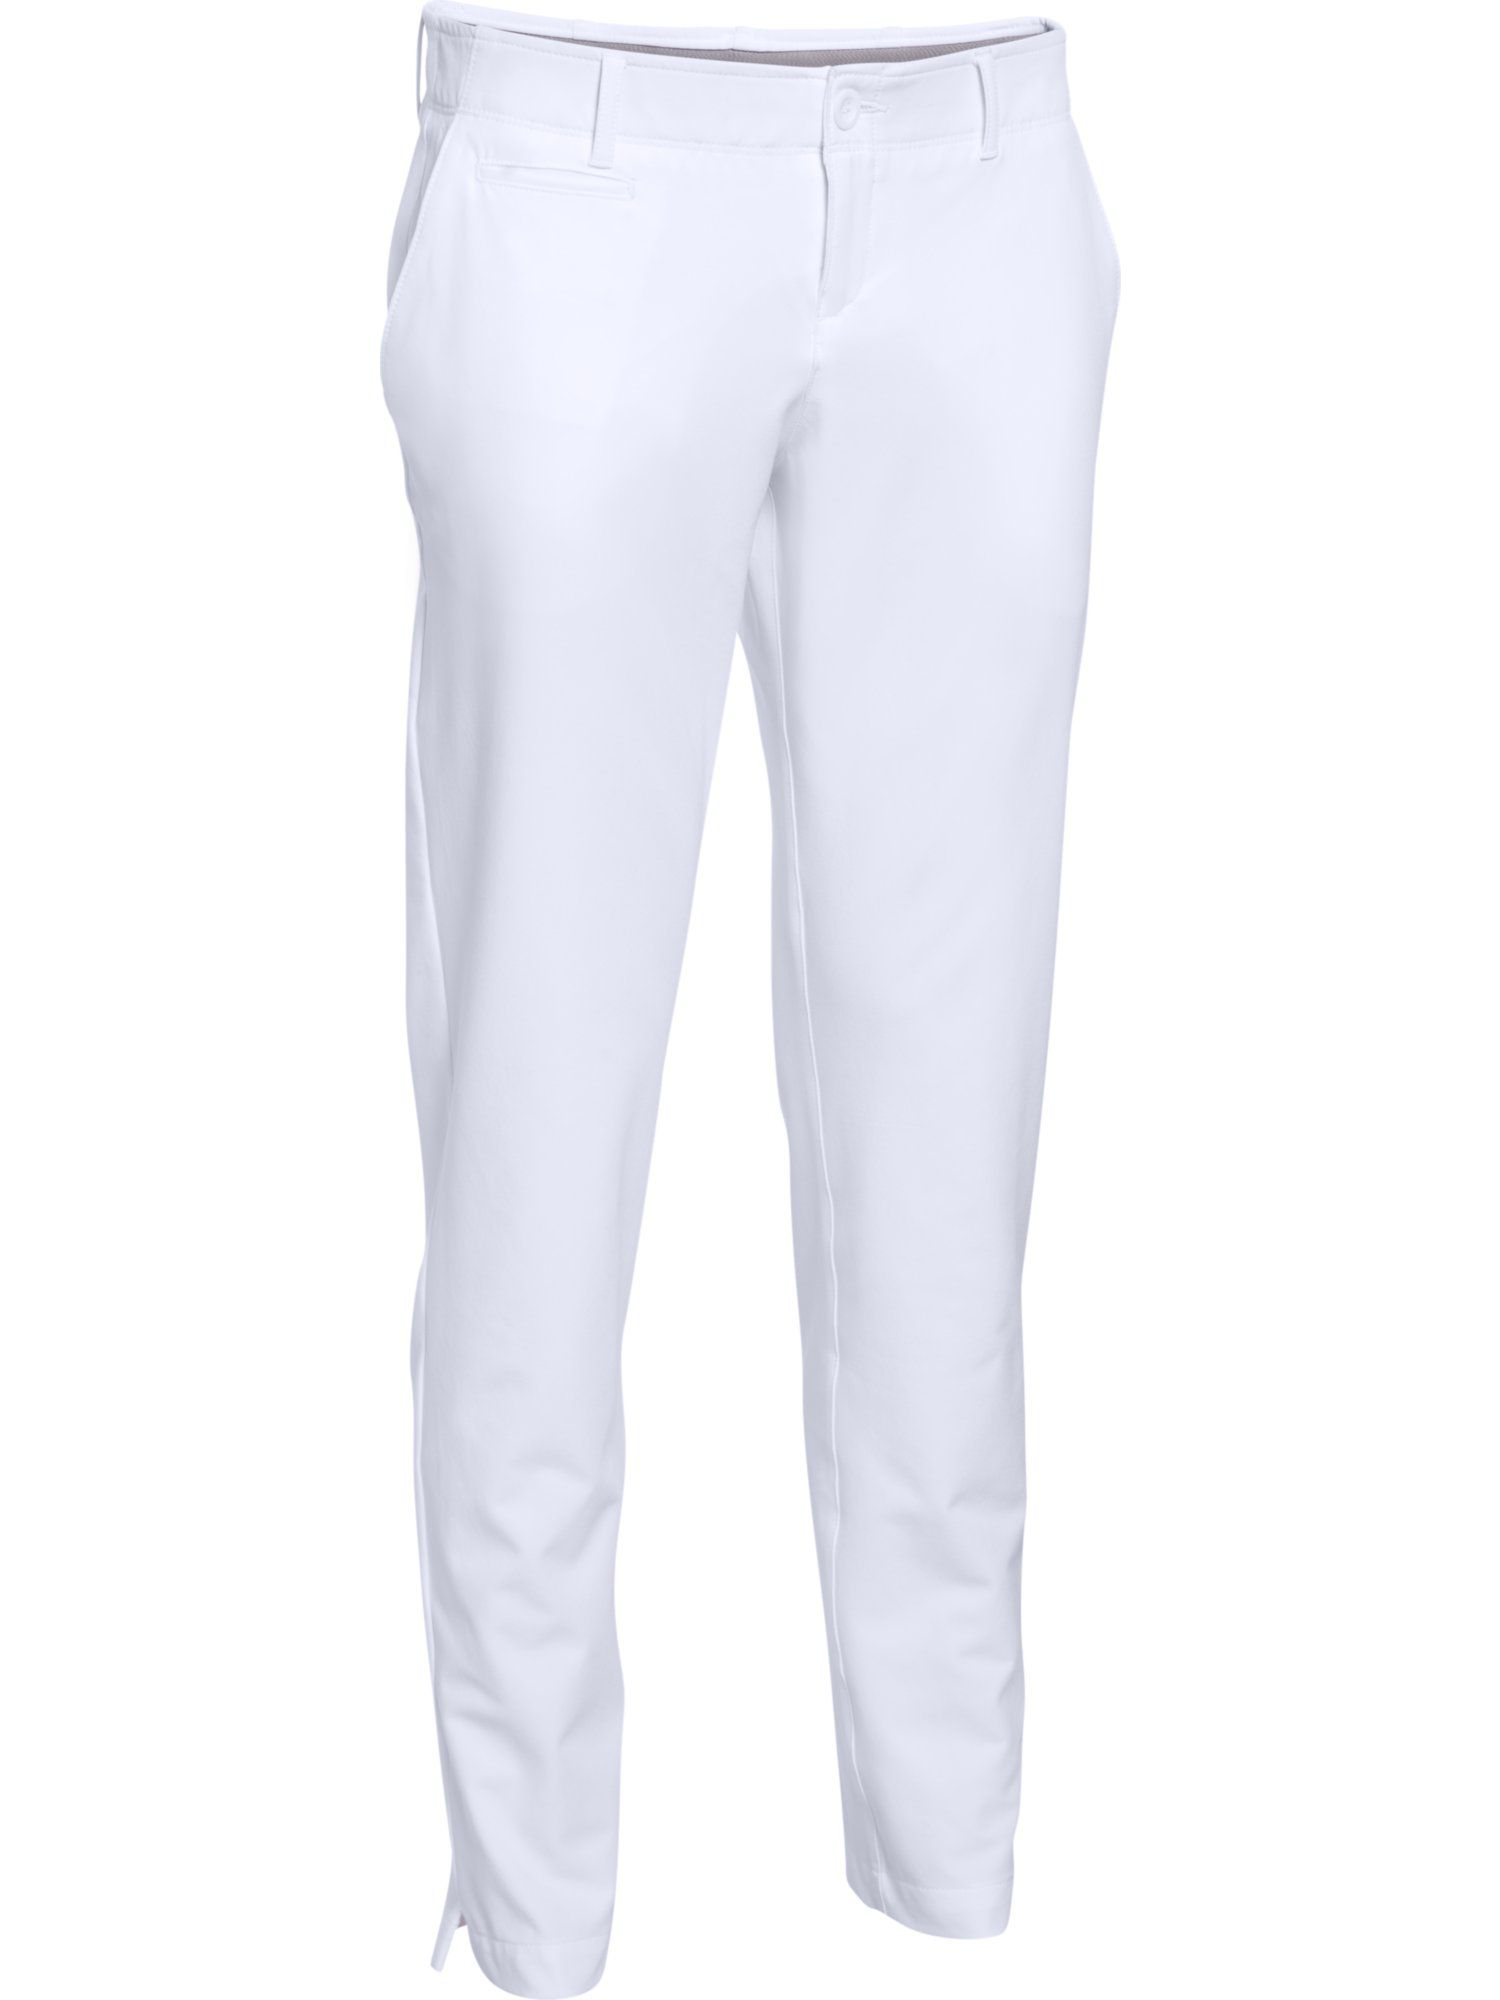 Under Armour Links Trousers, White